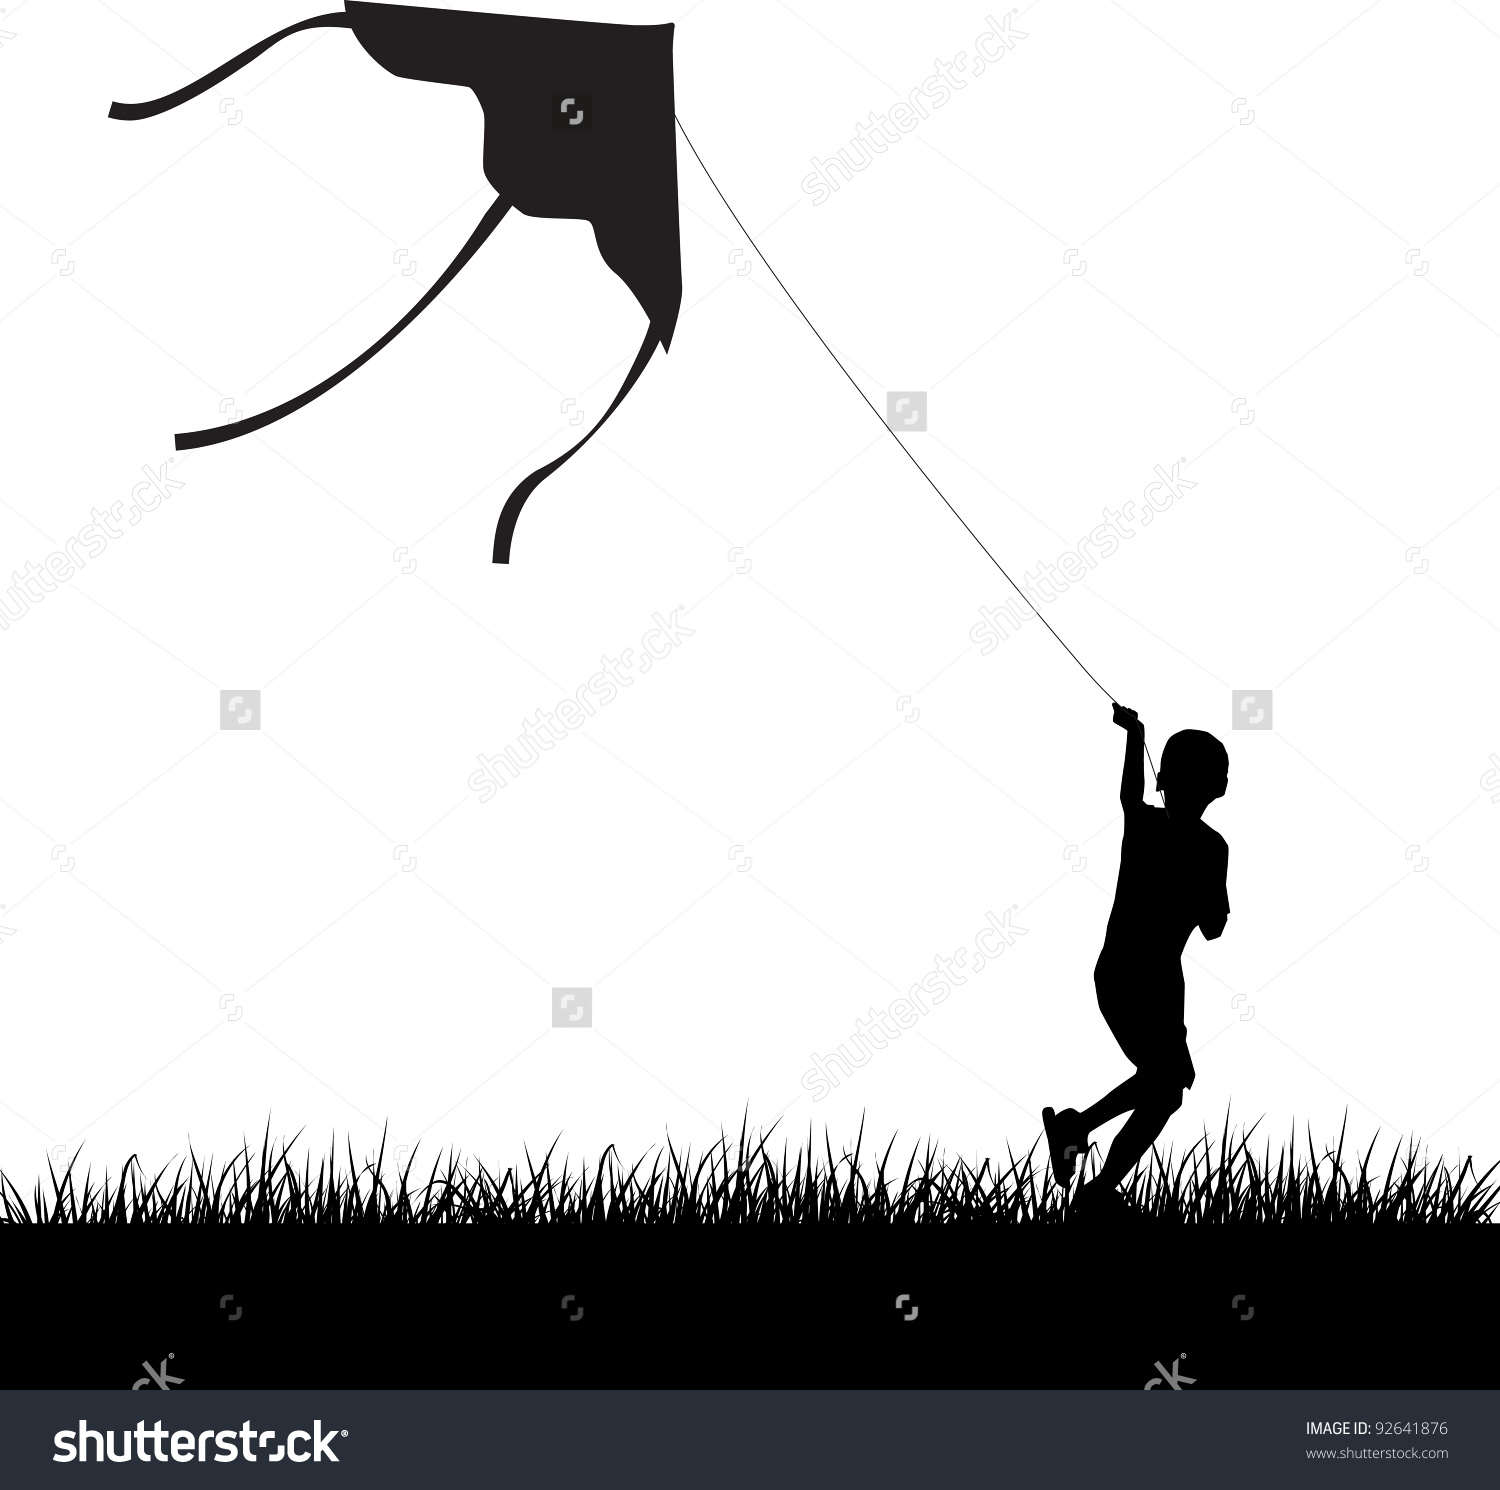 Silhouette Running Boy Flying Kite Vector Stock Vector 92641876.